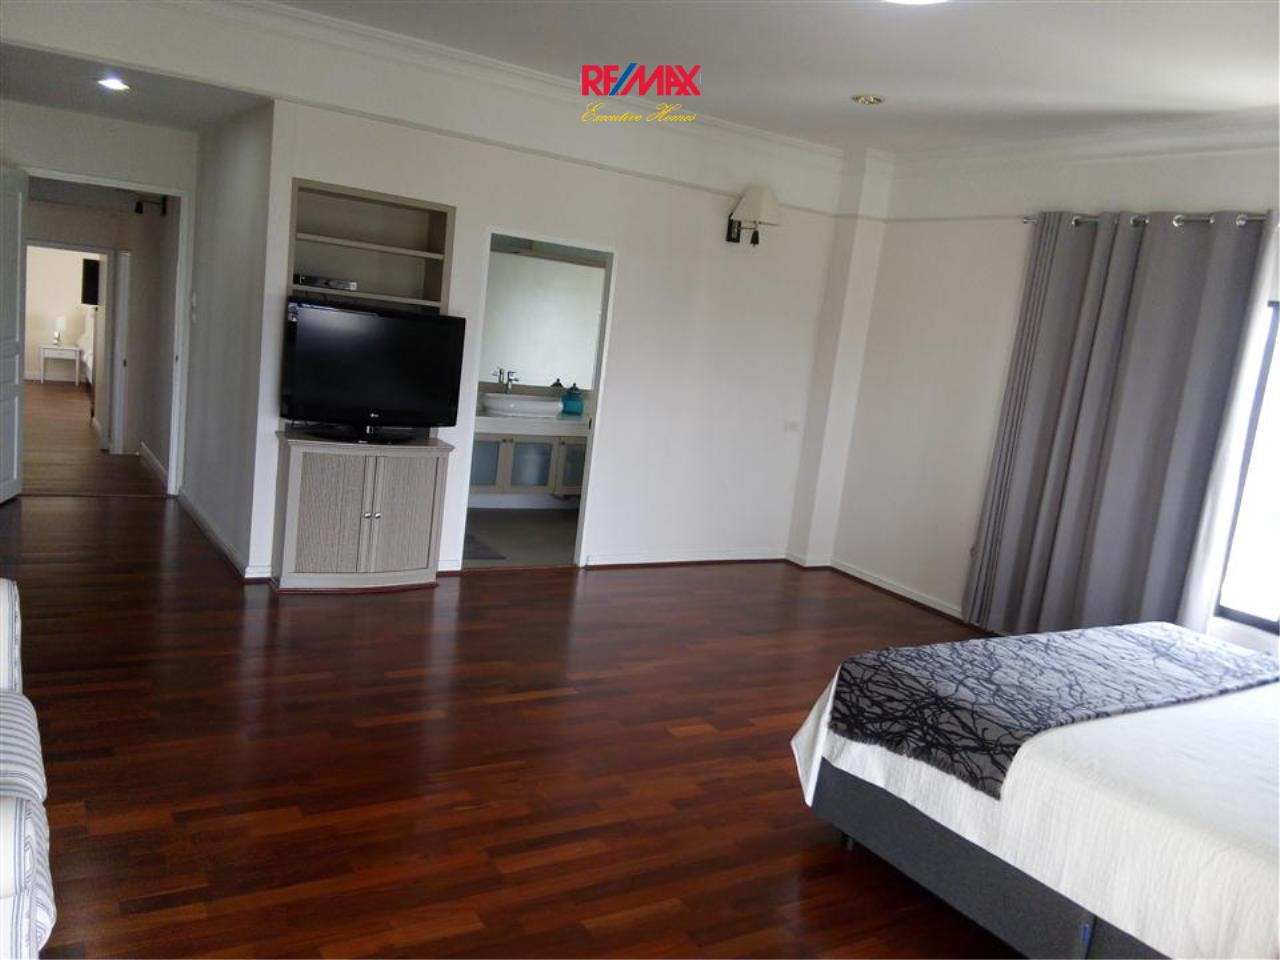 RE/MAX Executive Homes Agency's Nice 3 Bedroom for Rent Sathorn Crest 31